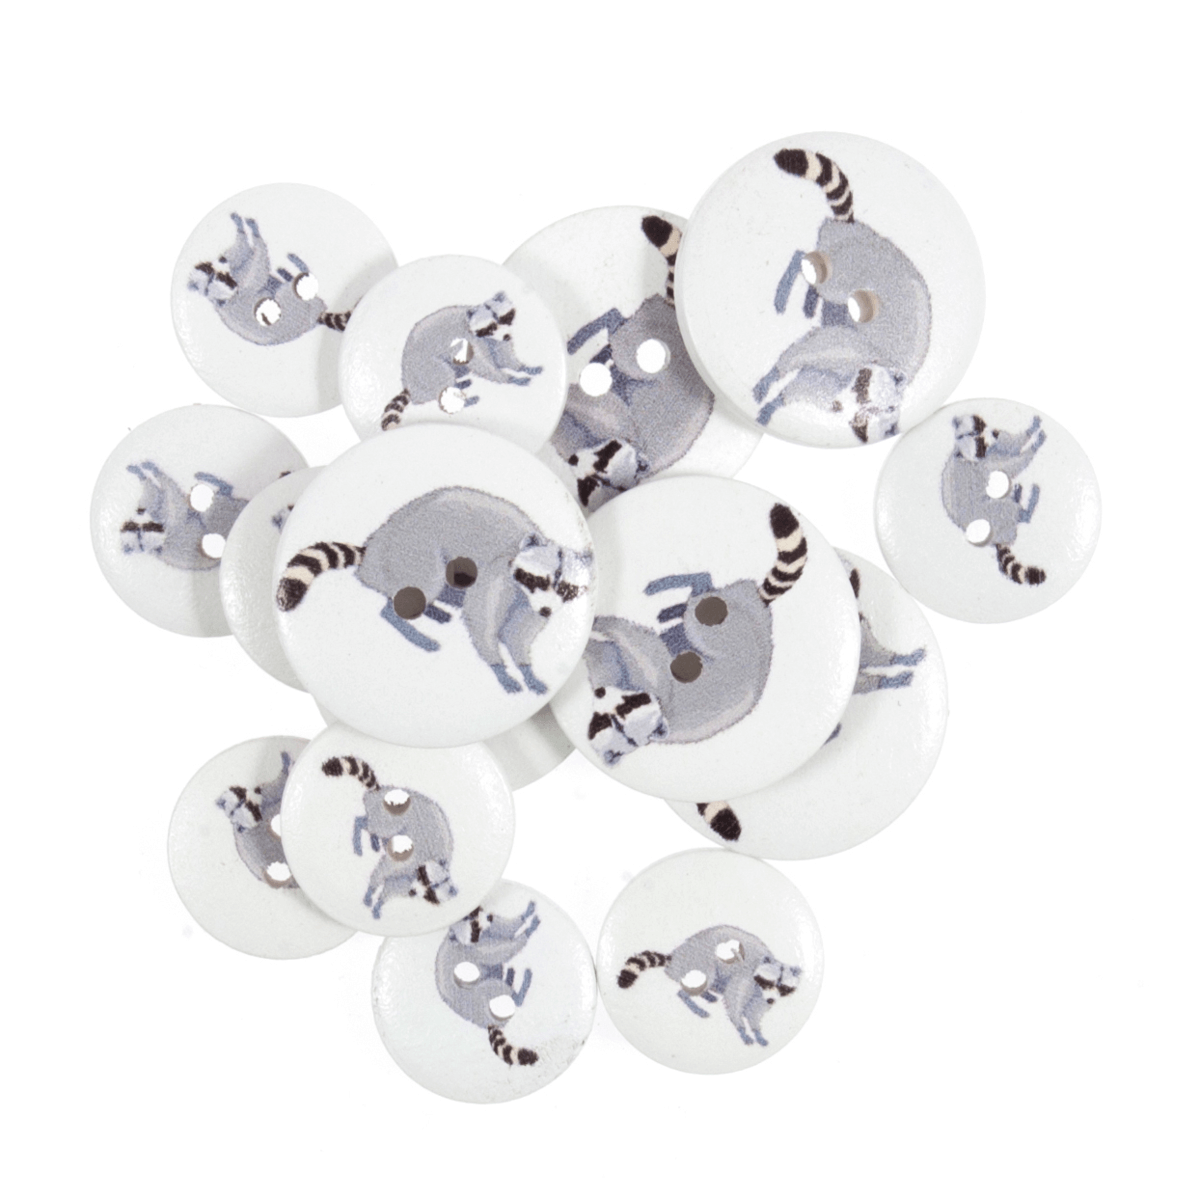 15 x Assorted Grey Raccoons Wooden Craft Buttons 18mm - 25mm